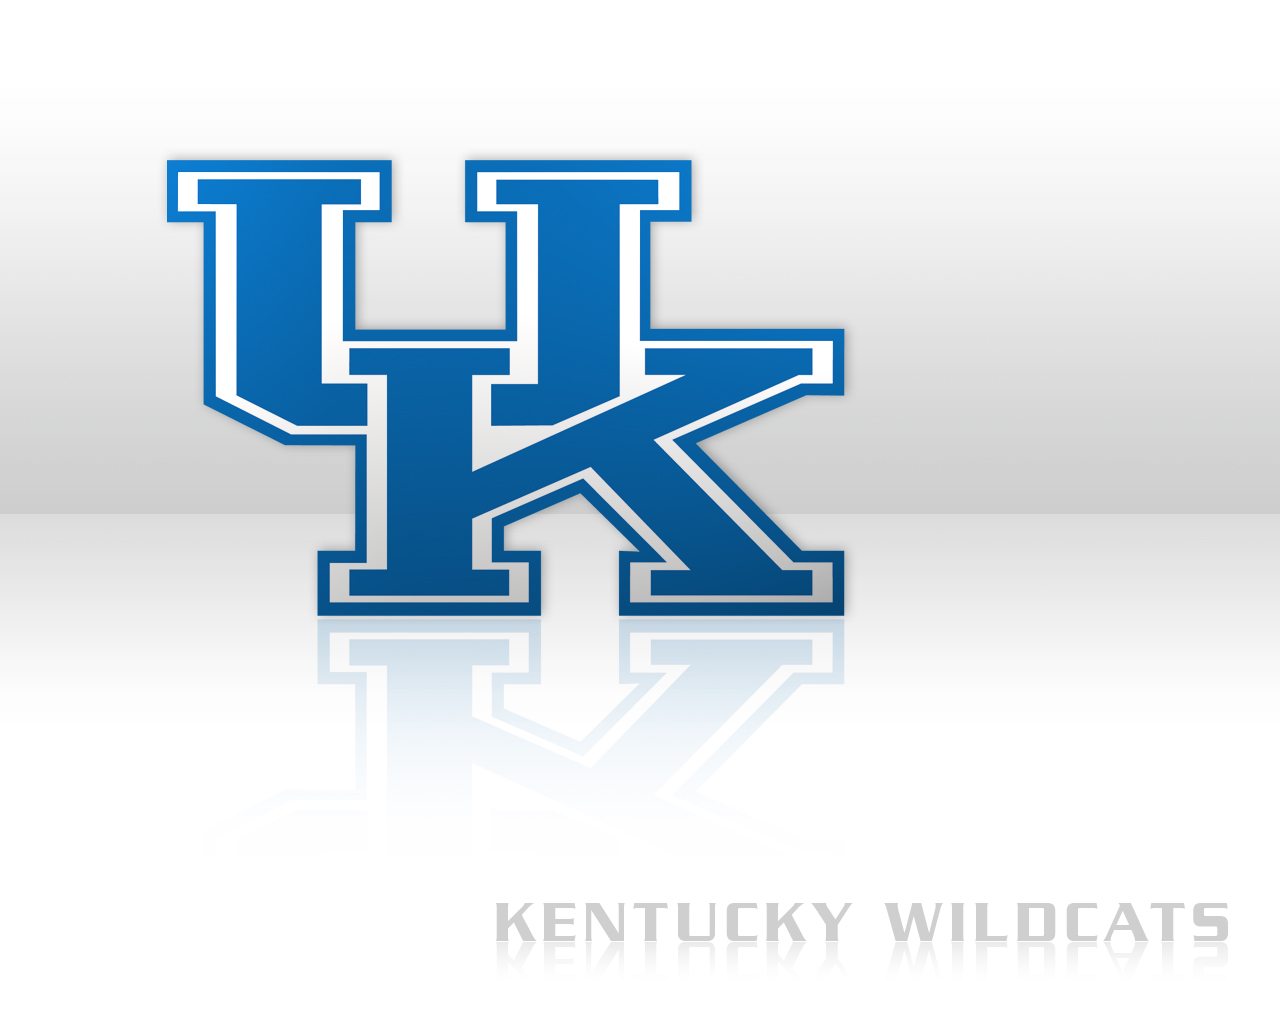 Uncategorized WildcatRobs Kentucky Wallpaper Blog 1280x1024